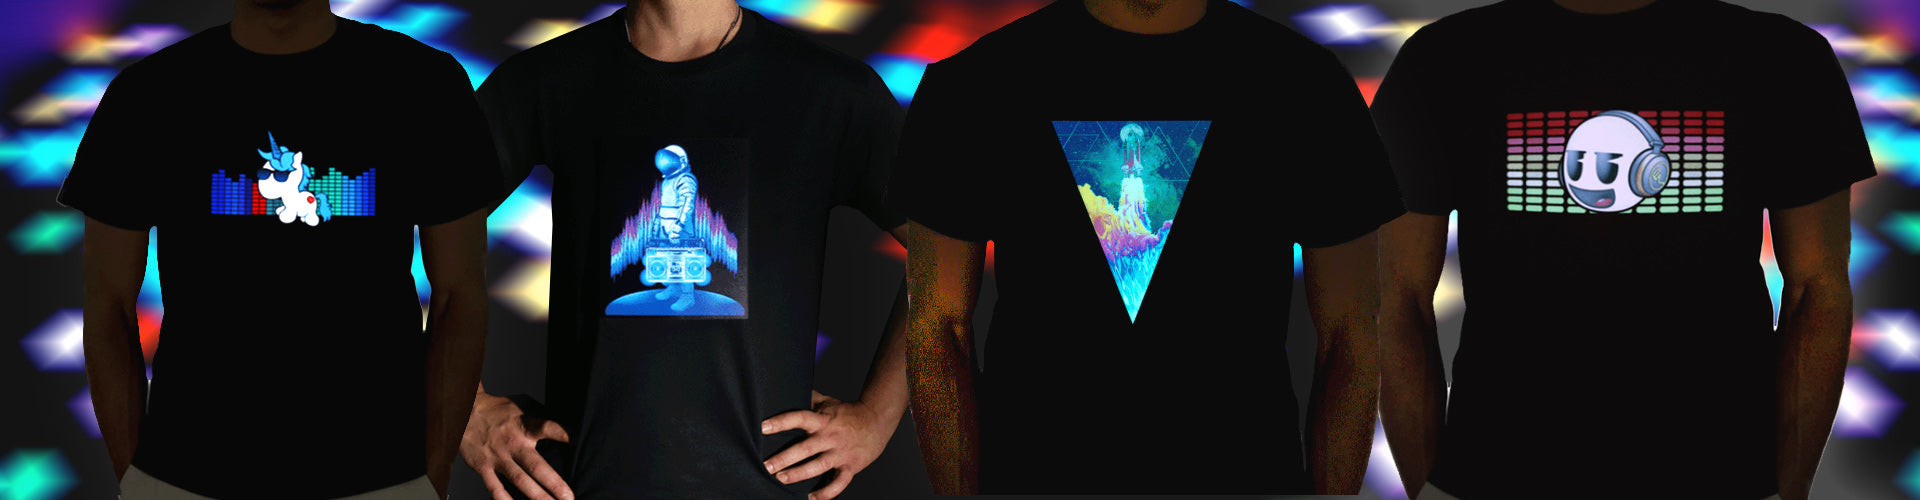 sound activated light up LED shirts